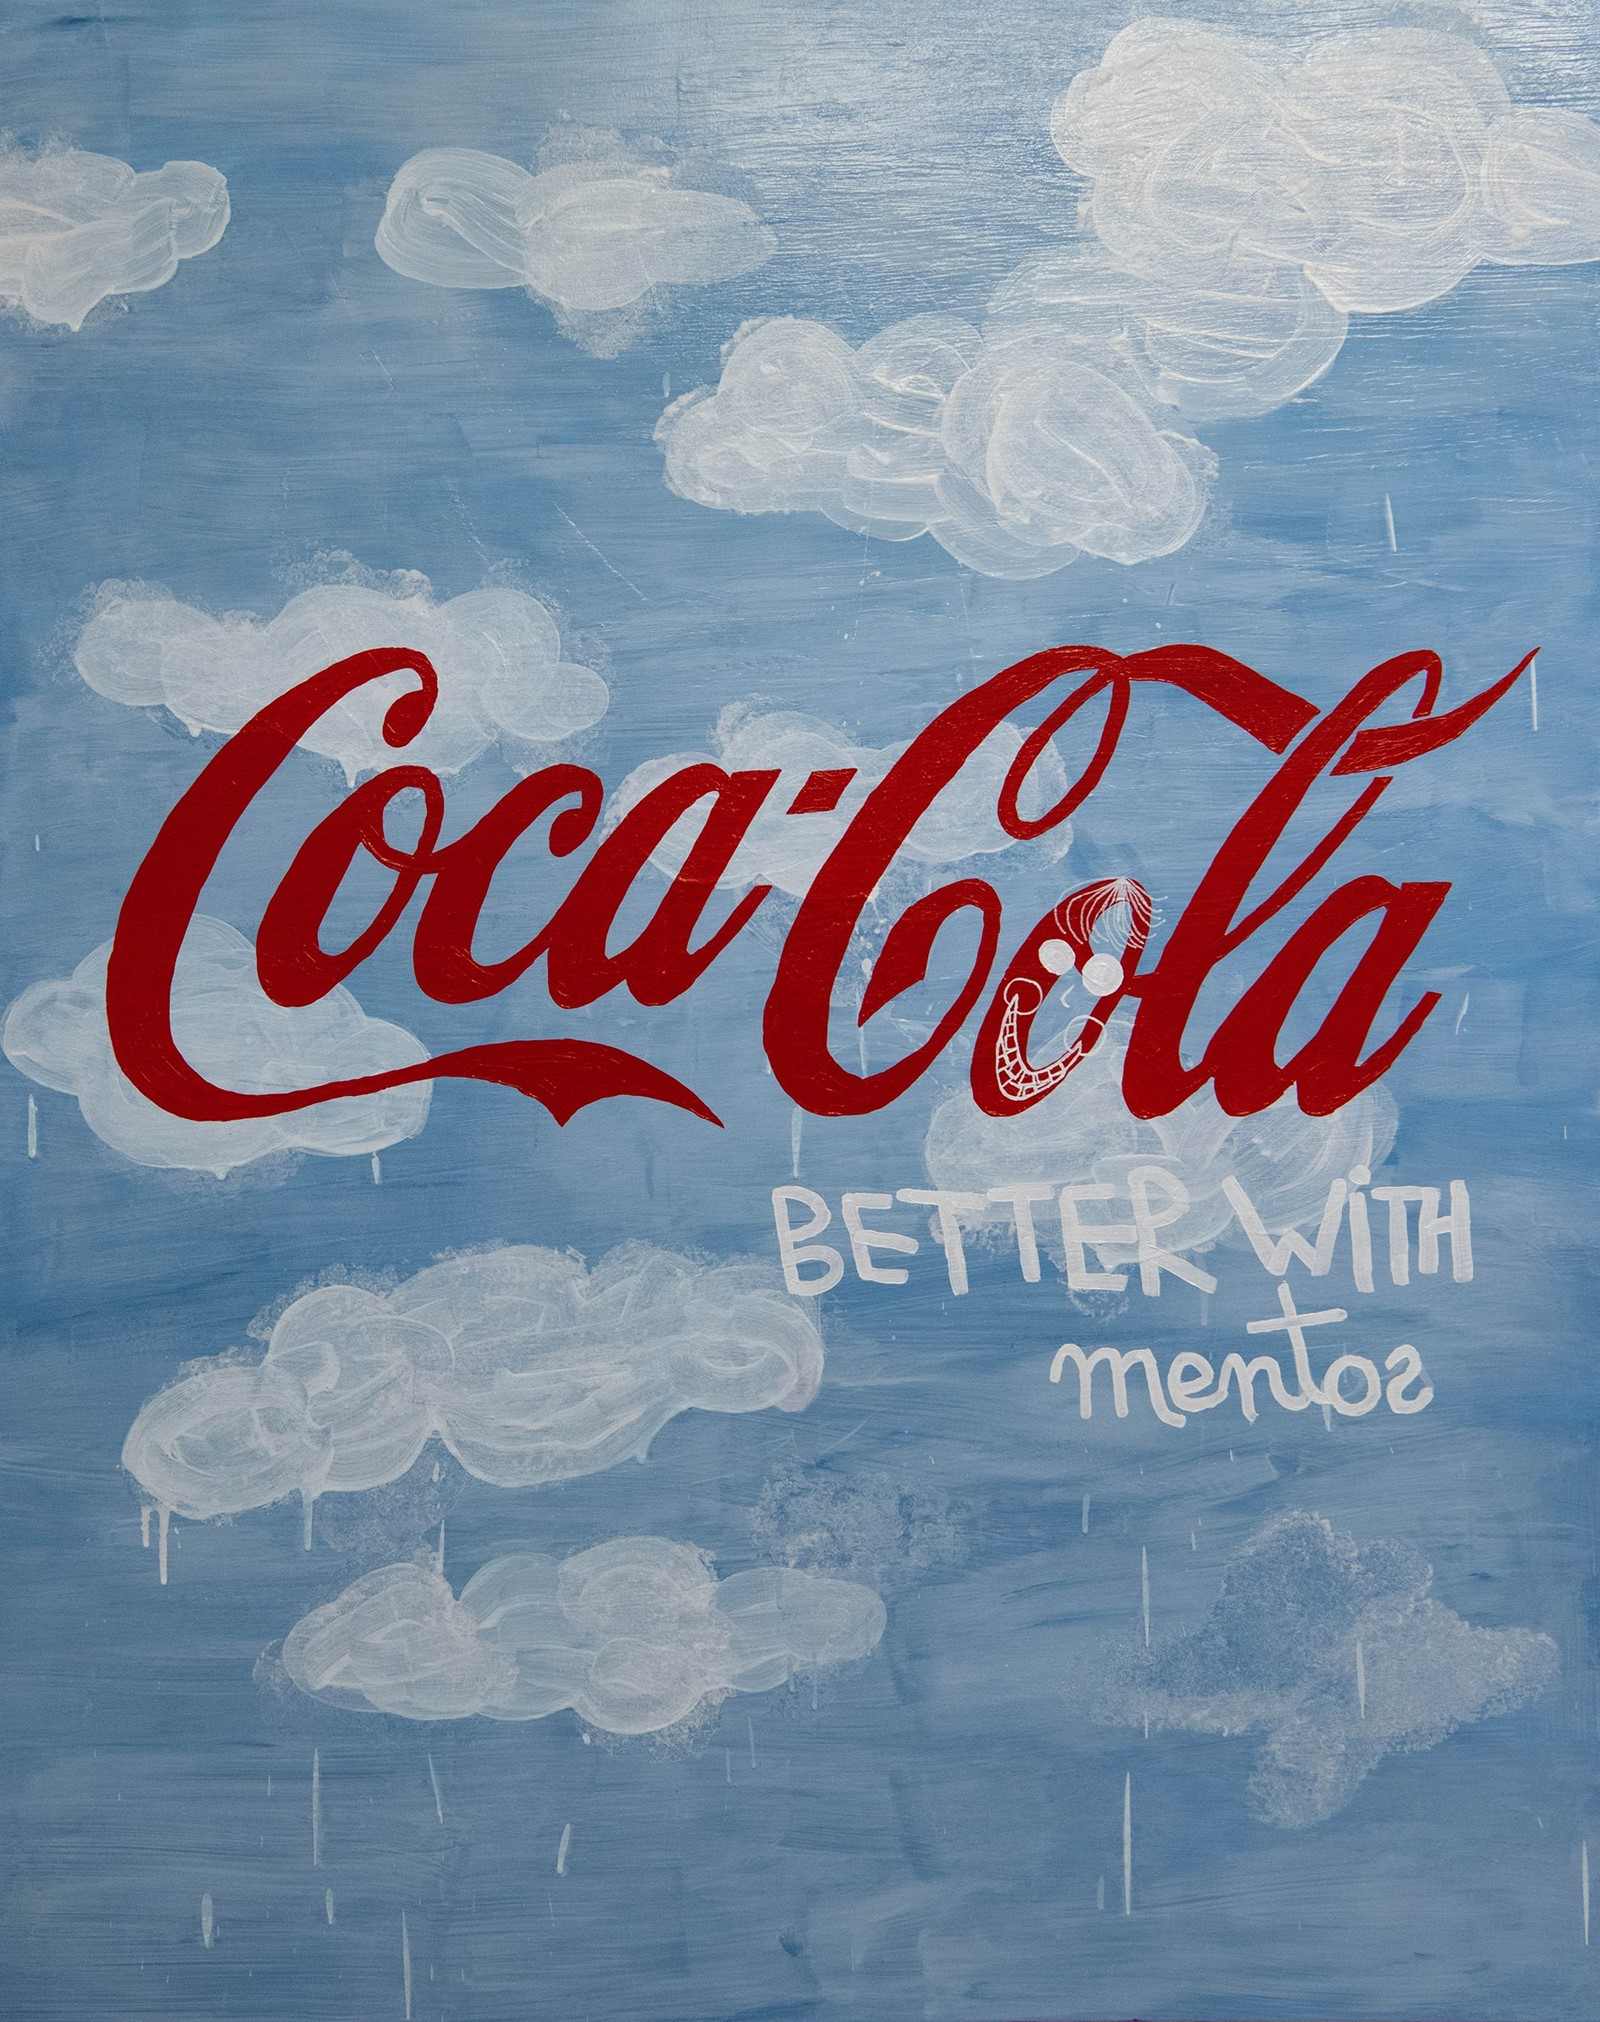 Coca-Cola-better-with-mentos